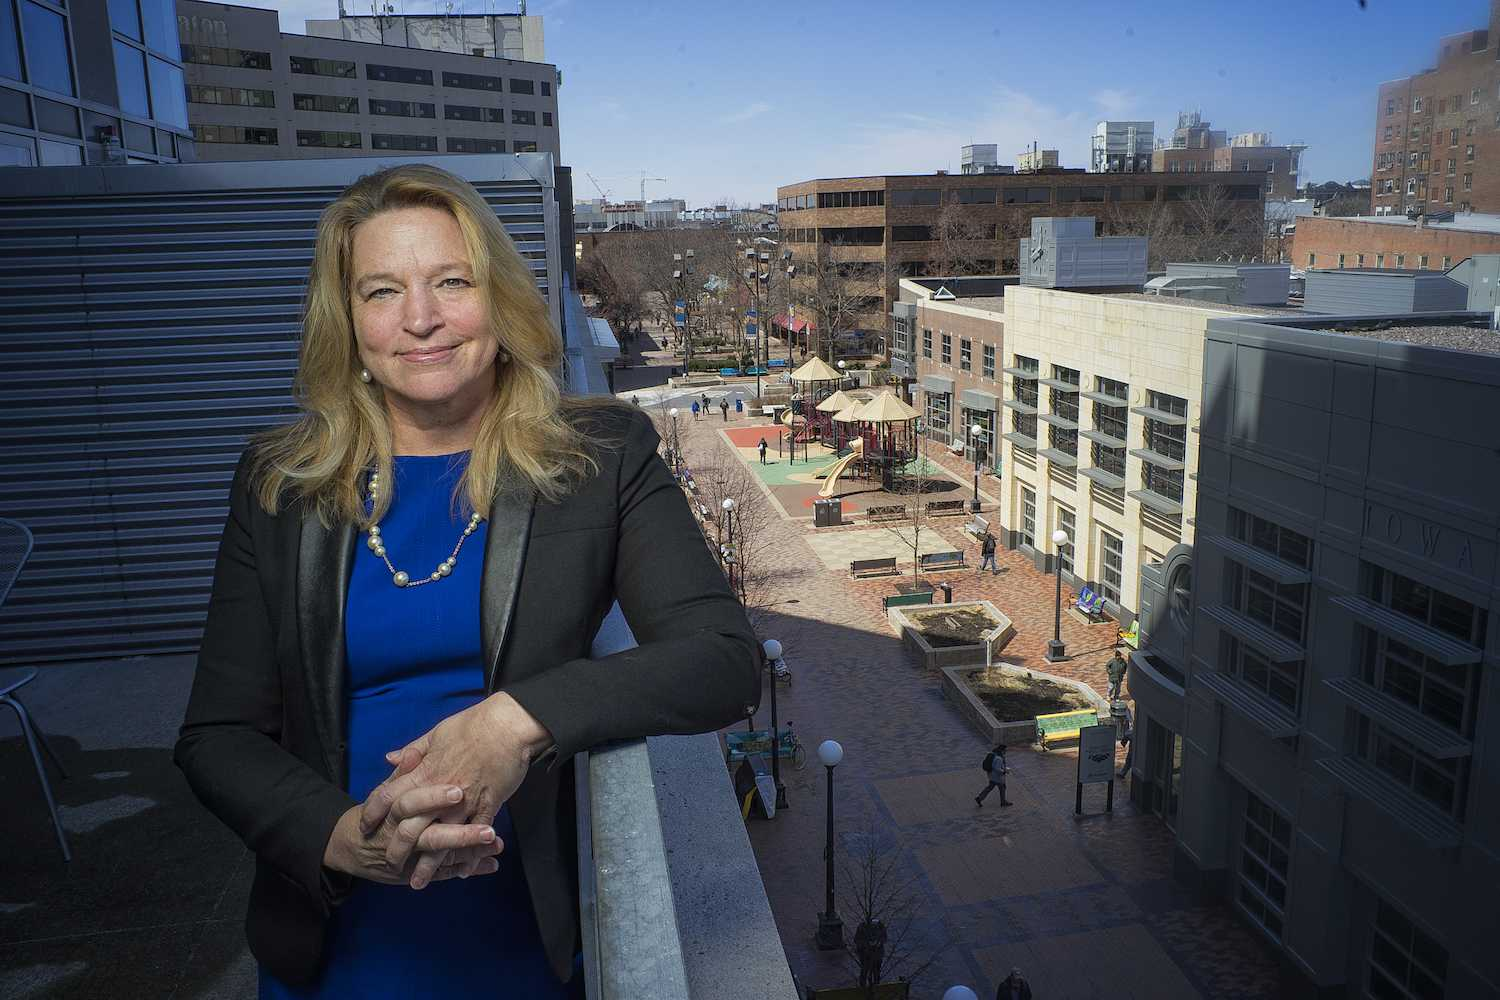 Former NASA Chief Scientist, Dr. Ellen Stofan, poses for a portrait while overlooking the Ped Mall on Tuesday, April 17, 2018. Dr. Stofan will be speaking on Tuesday night at the Englert Theater about space exploration and climate change. She has also been named as the director of the Air and Space Museum in Washington D.C. (James Year/ The Daily Iowan)